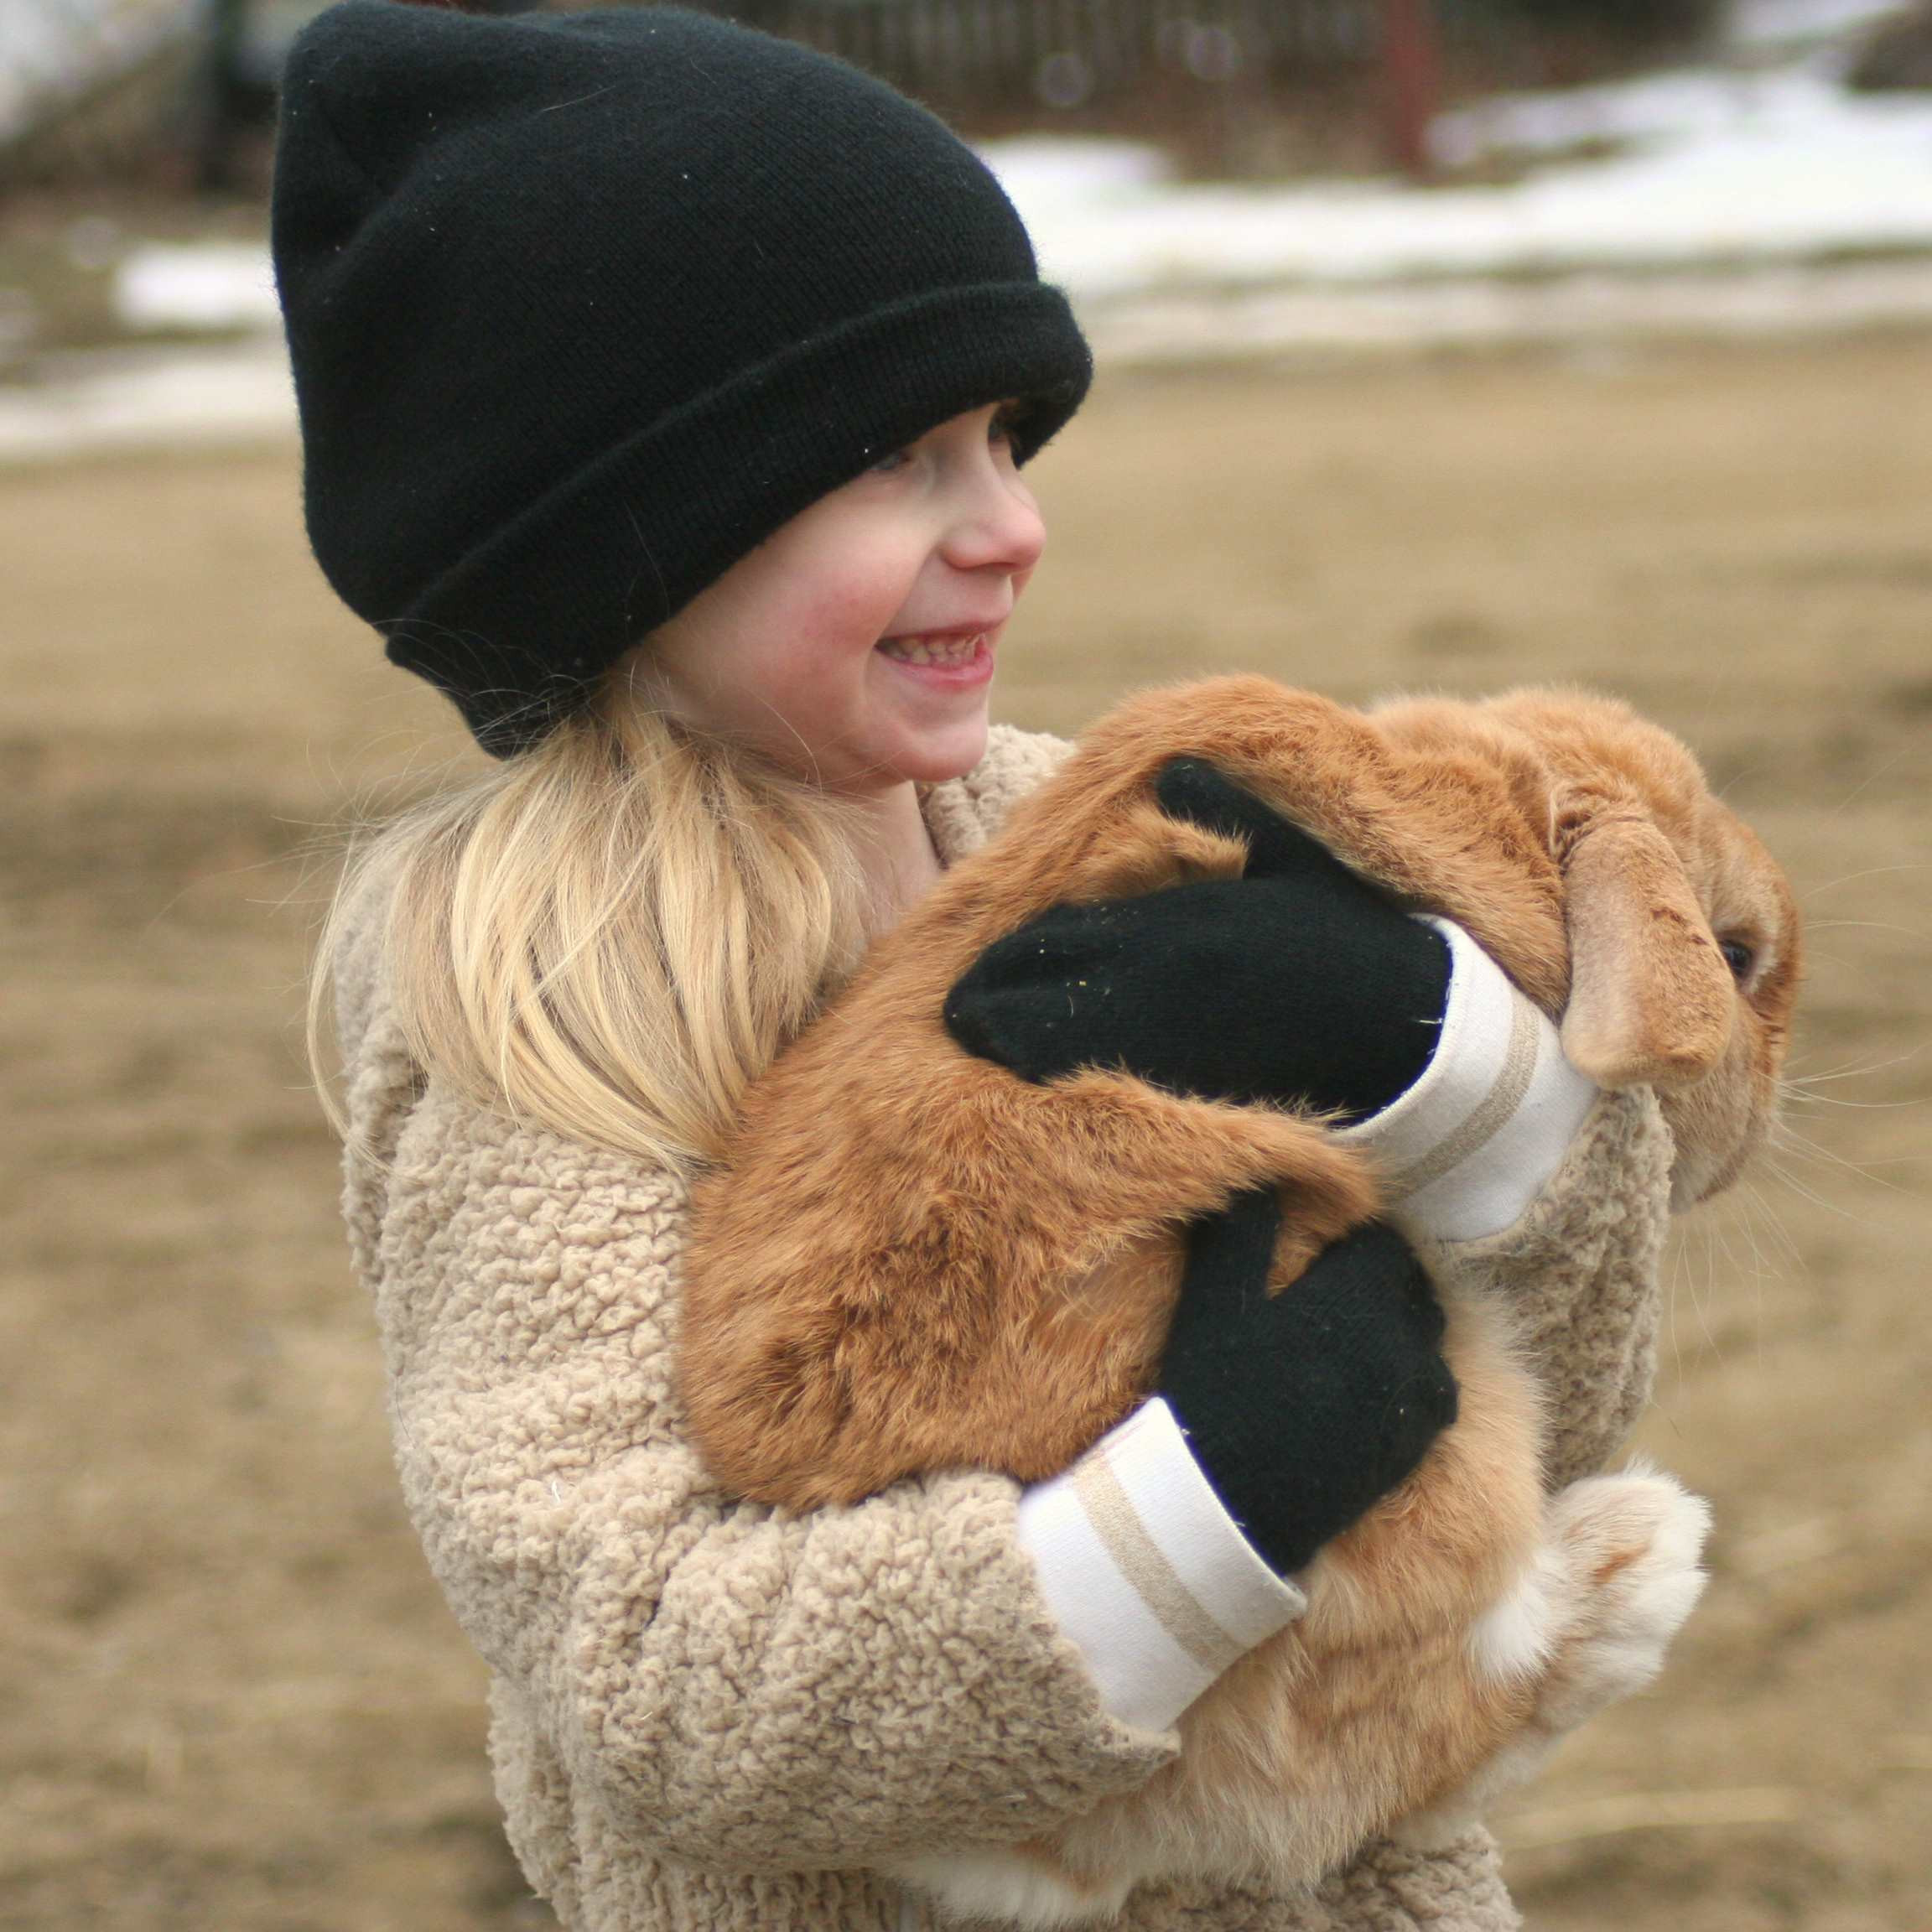 A young visitor holds one of our rabbits